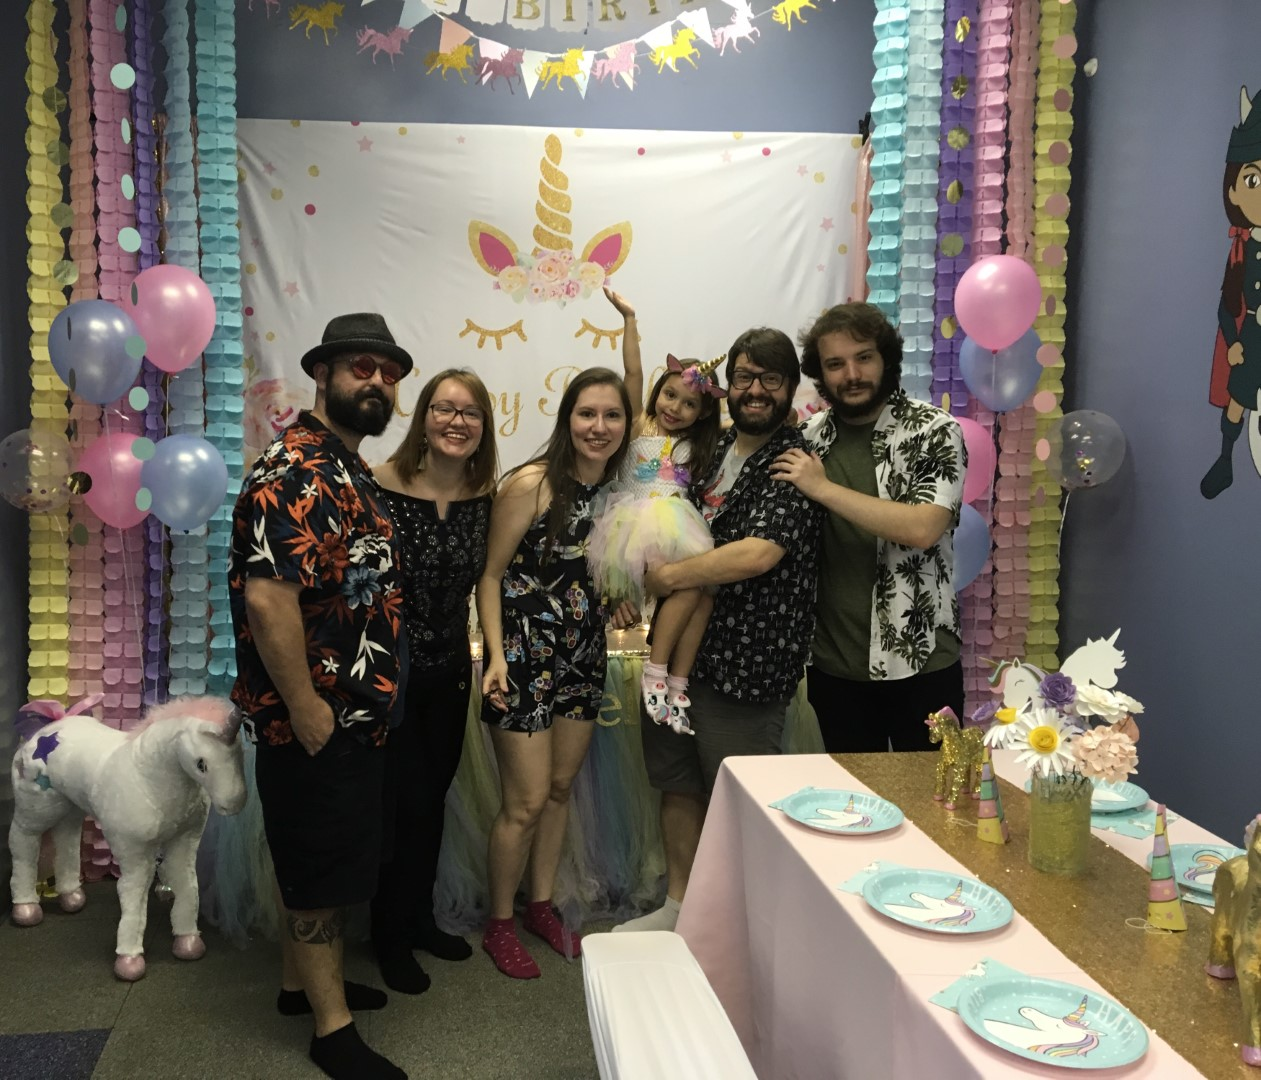 unicorn themed 5 year old birthday party orlando fl (4).JPEG